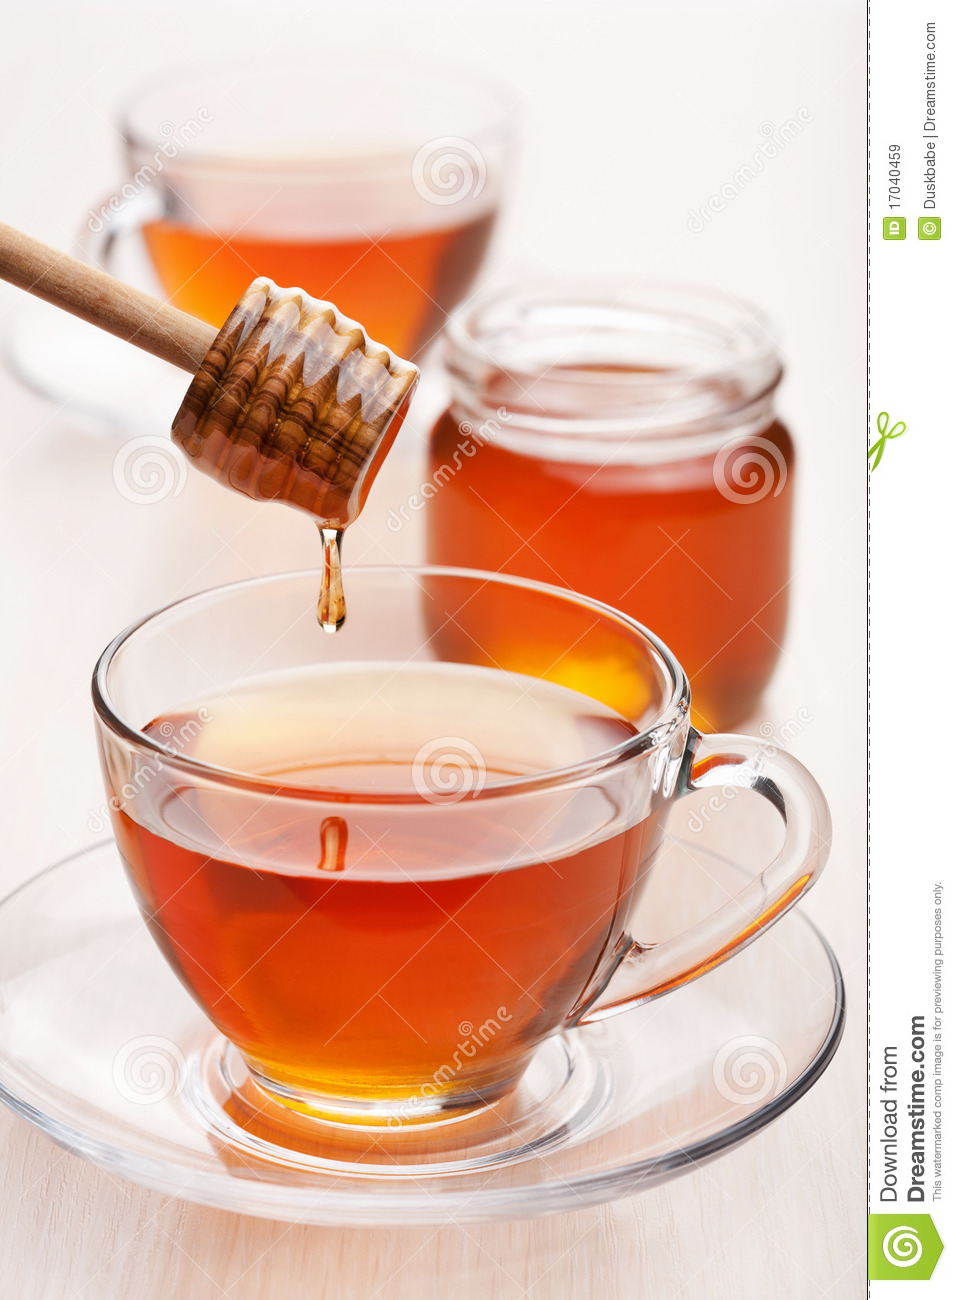 A Marble In A Cup Of Honey : Tea with honey stock image of herb closeup golden